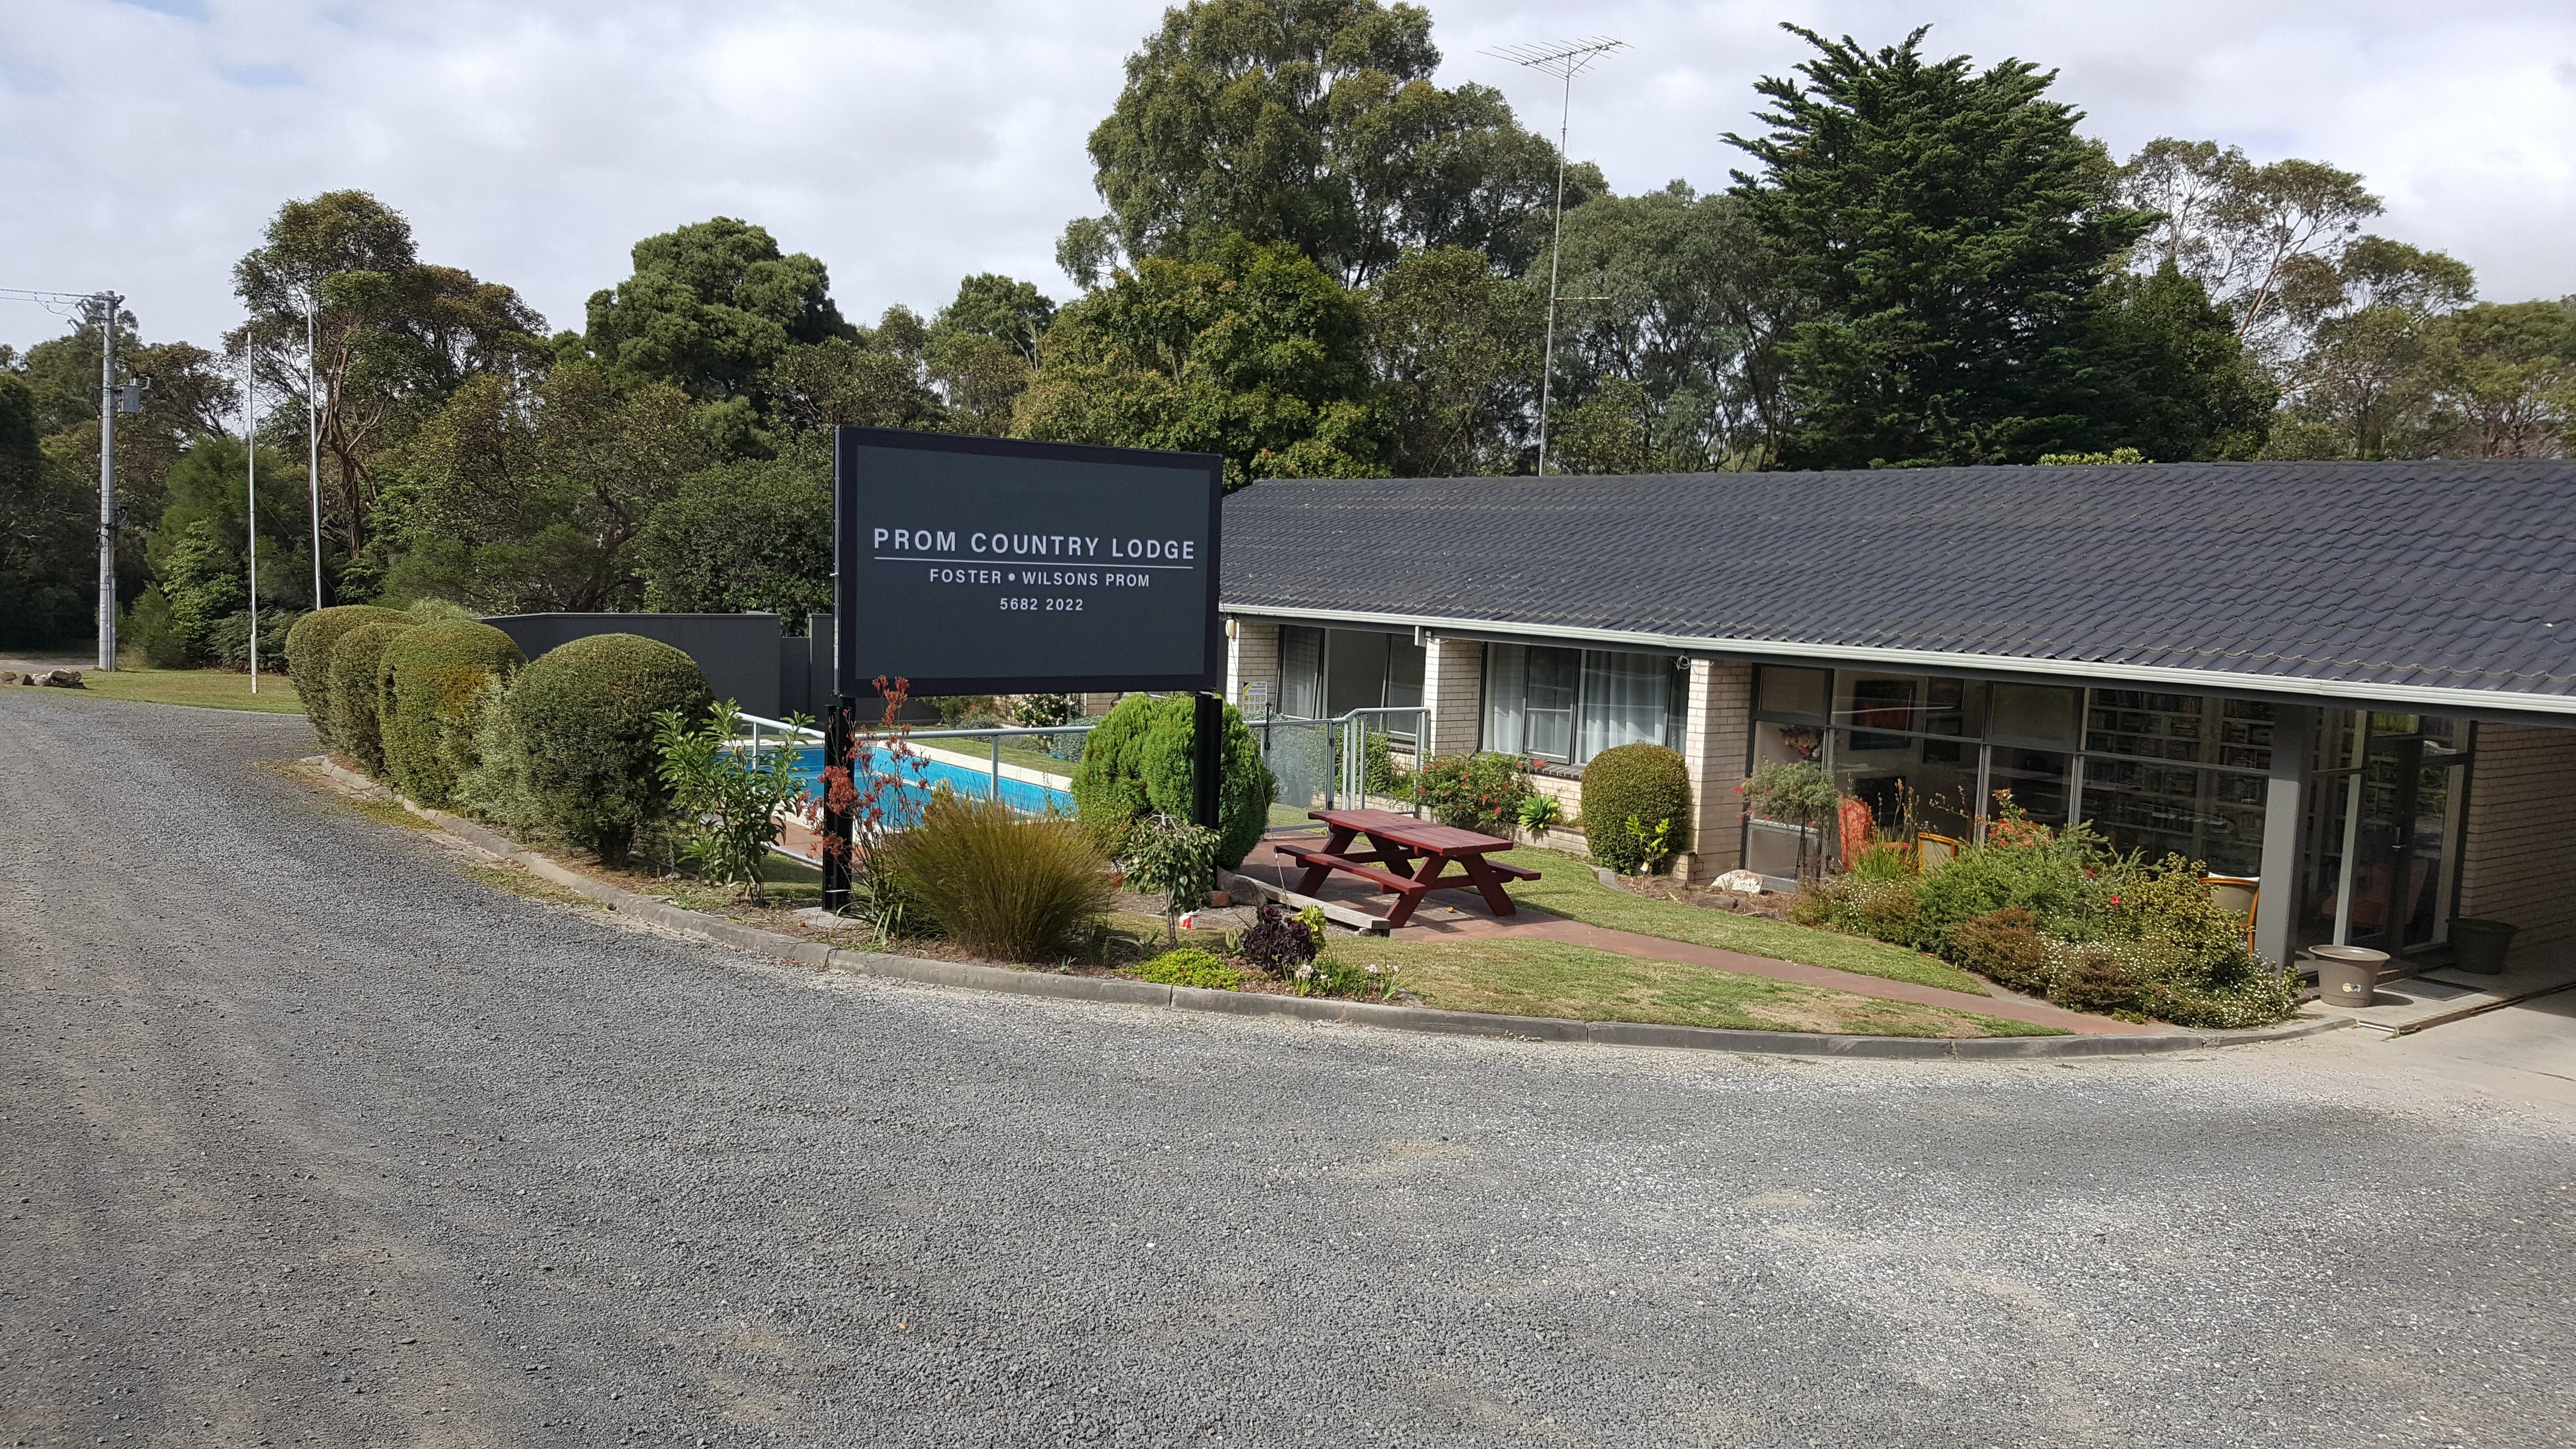 Prom Country Lodge - Coogee Beach Accommodation